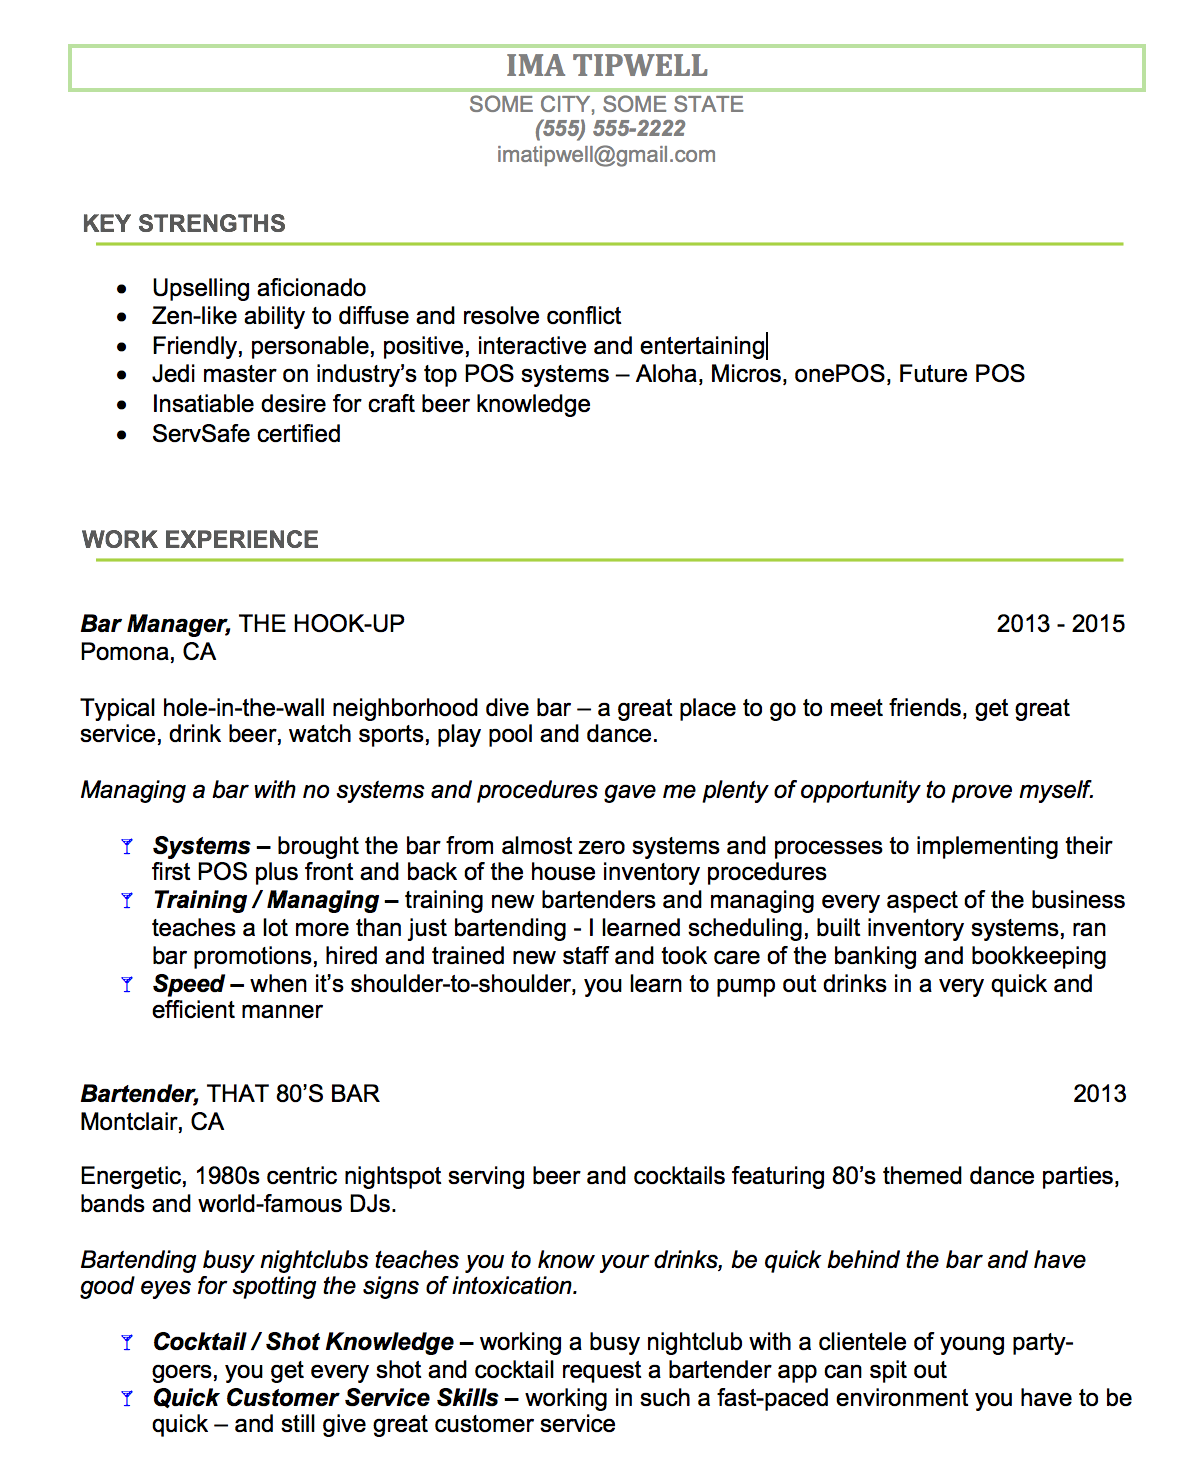 bartending resume example 2 with industry experience - Bartender Resume Sample 2 2